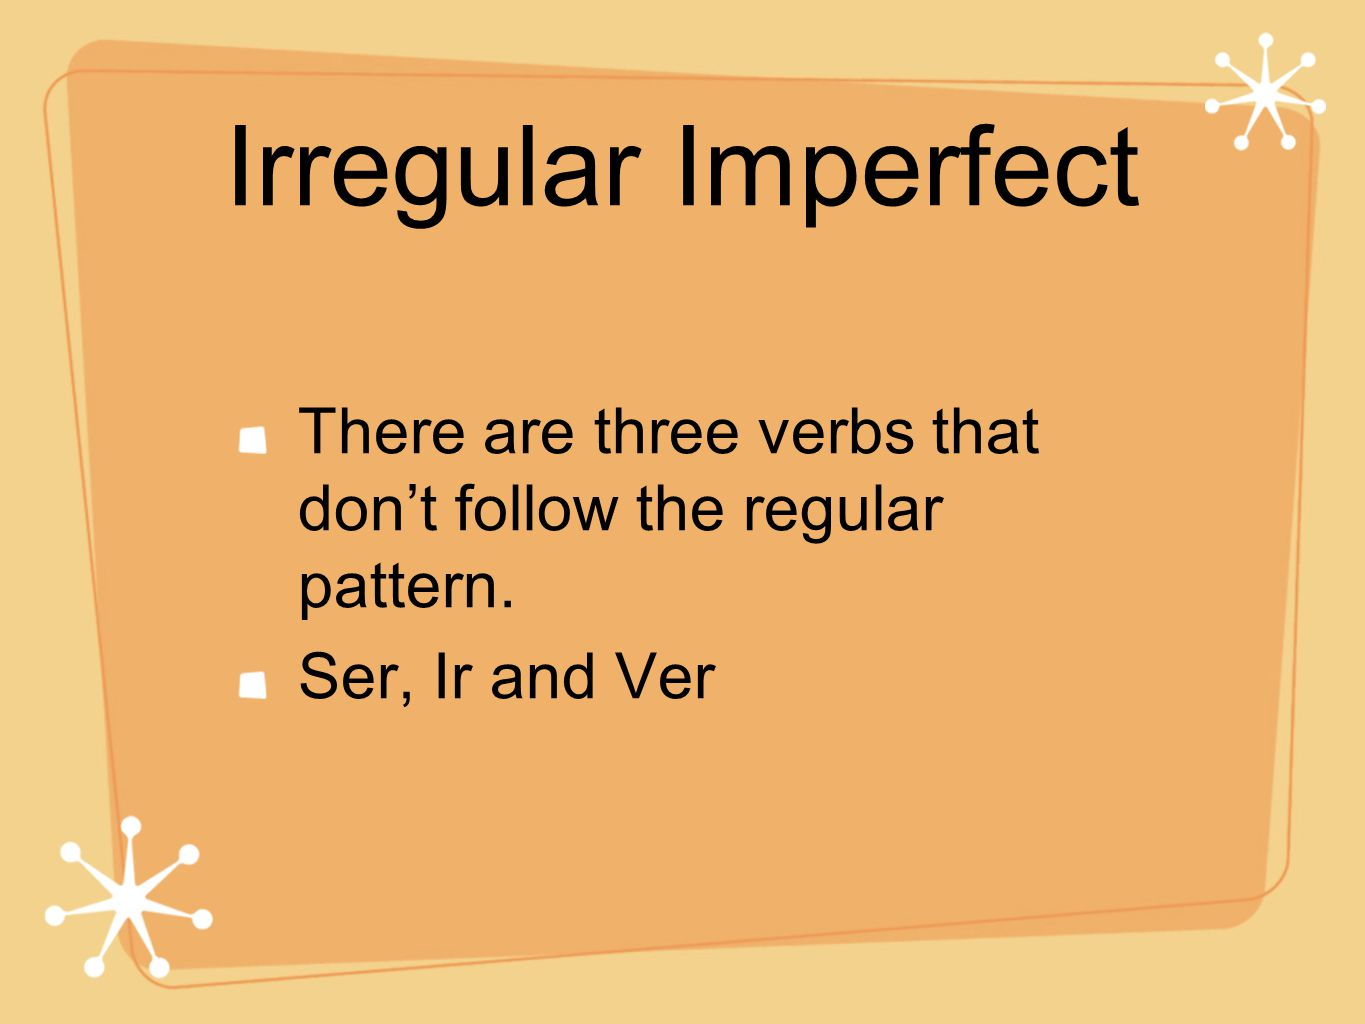 Irregular Imperfect There are three verbs that don't follow the regular pattern. Ser, Ir and Ver